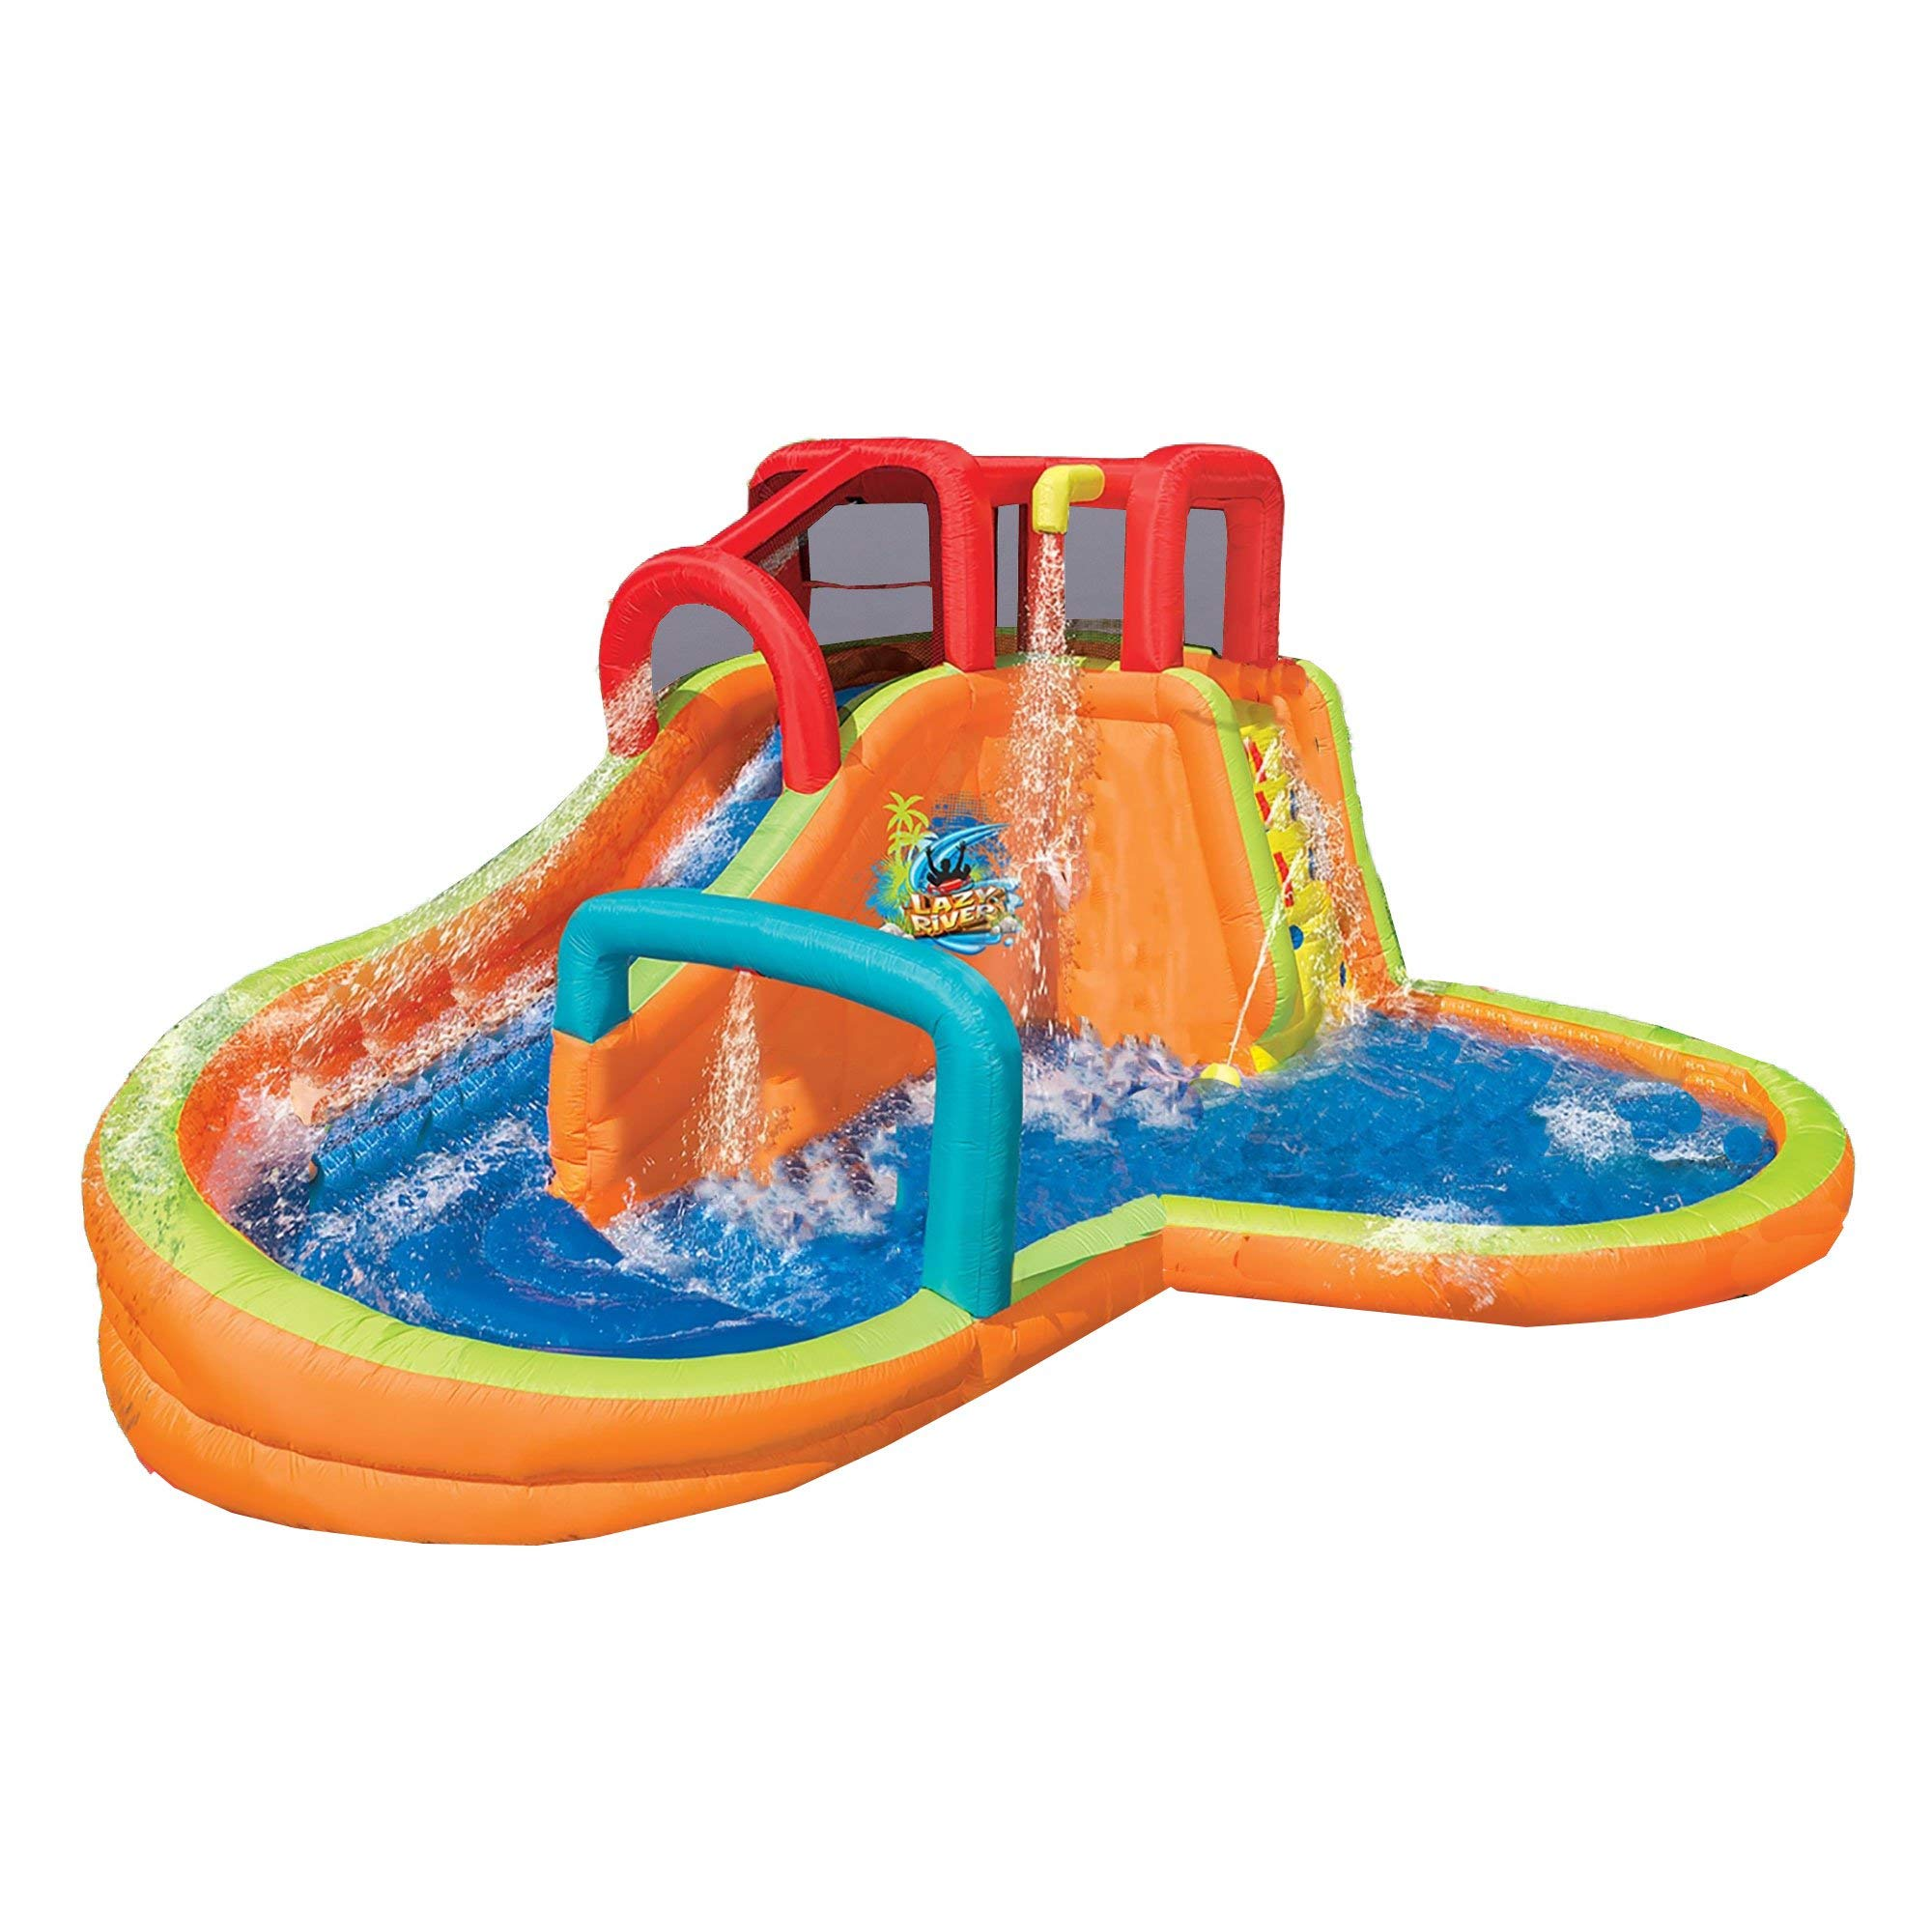 BANZAI Kids Inflatable Outdoor Lazy River Adventure Water Park Slide and Pool by BANZAI (Image #1)